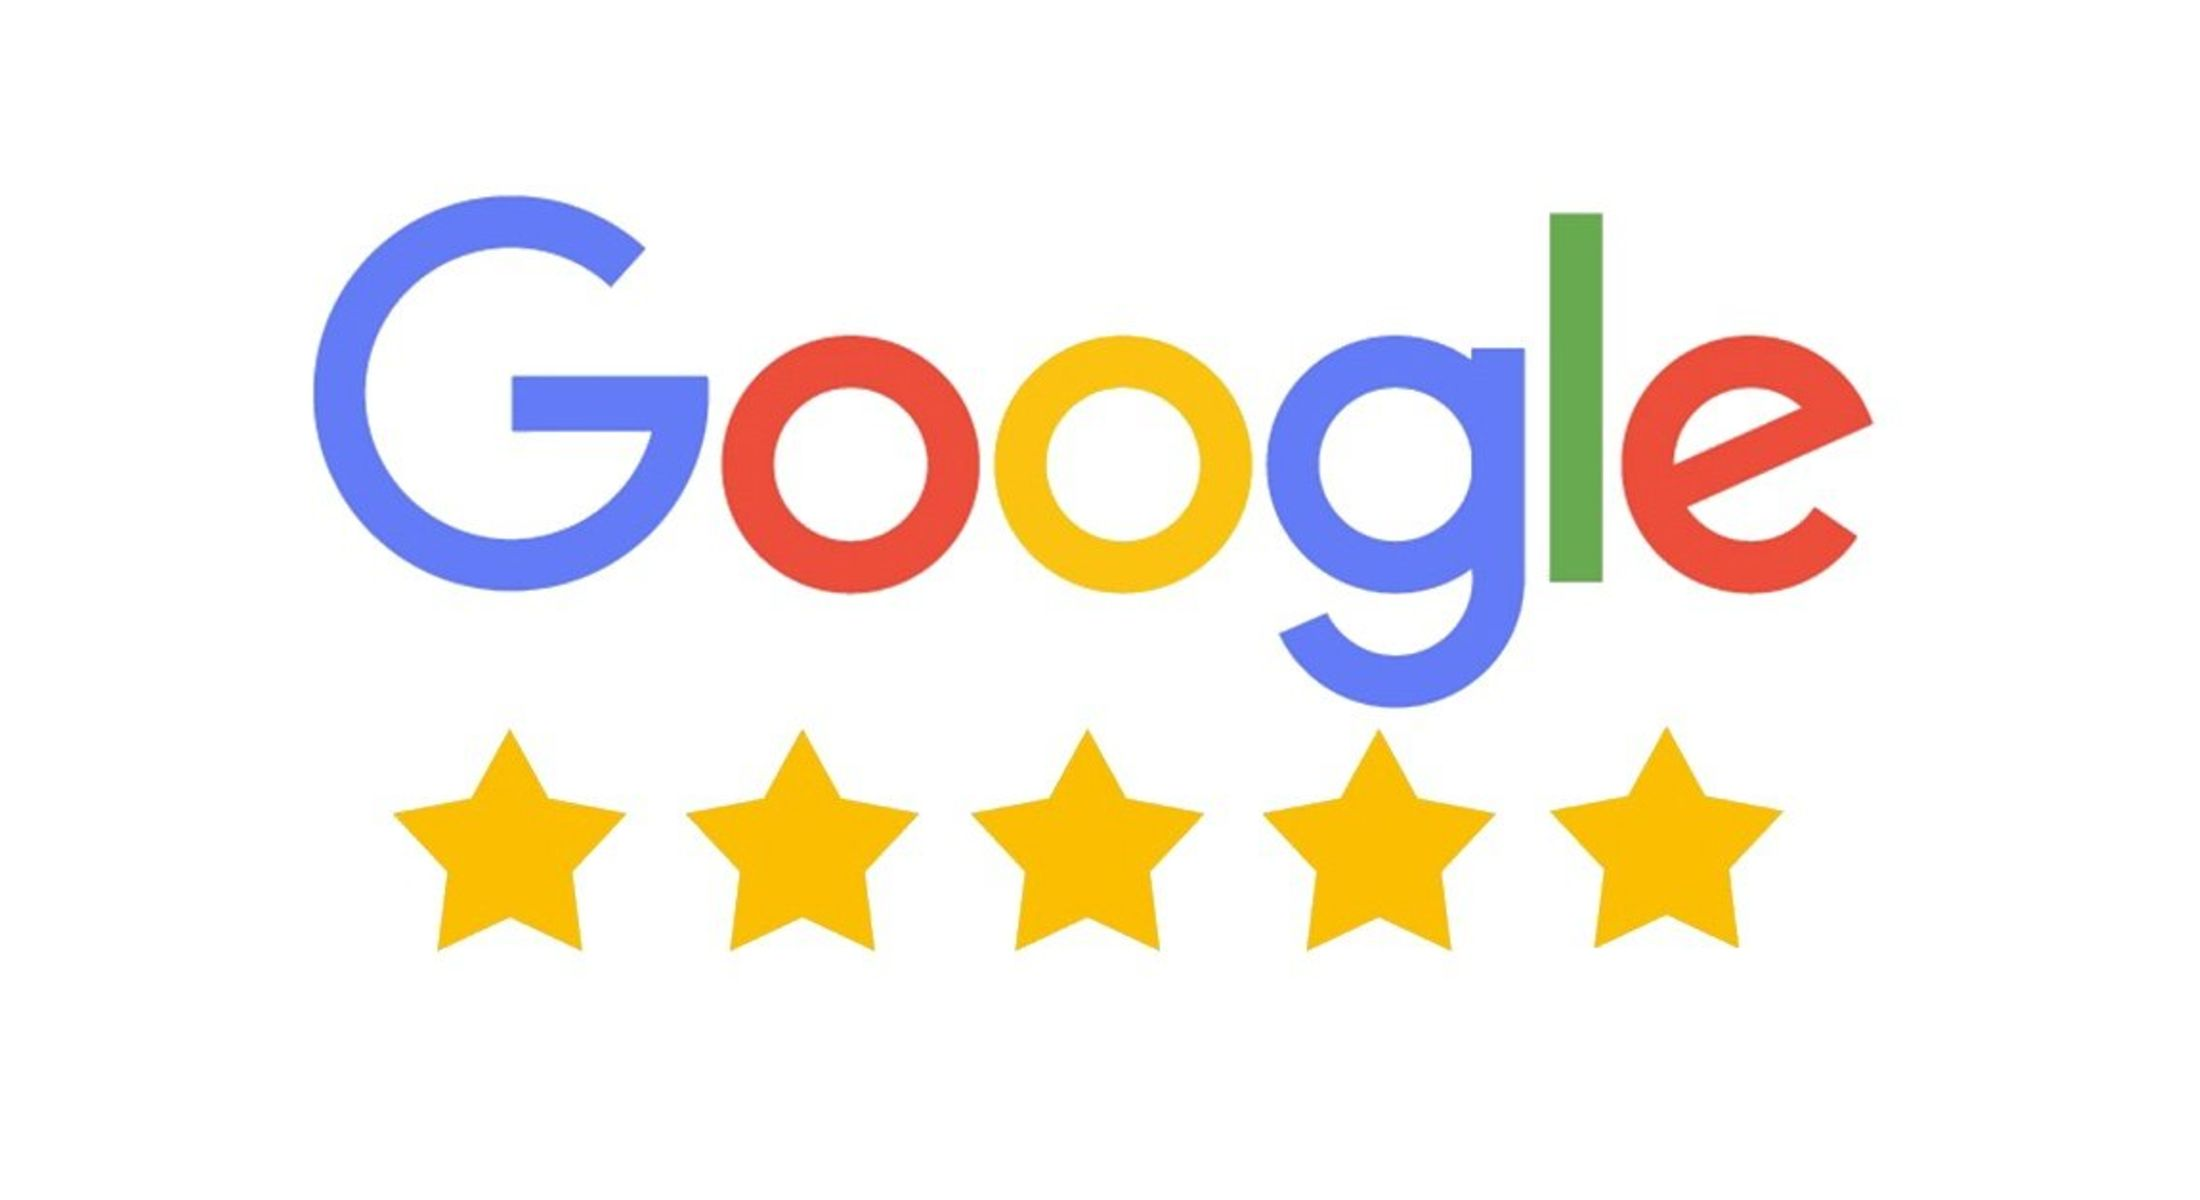 26-googleplusreviews.jpg